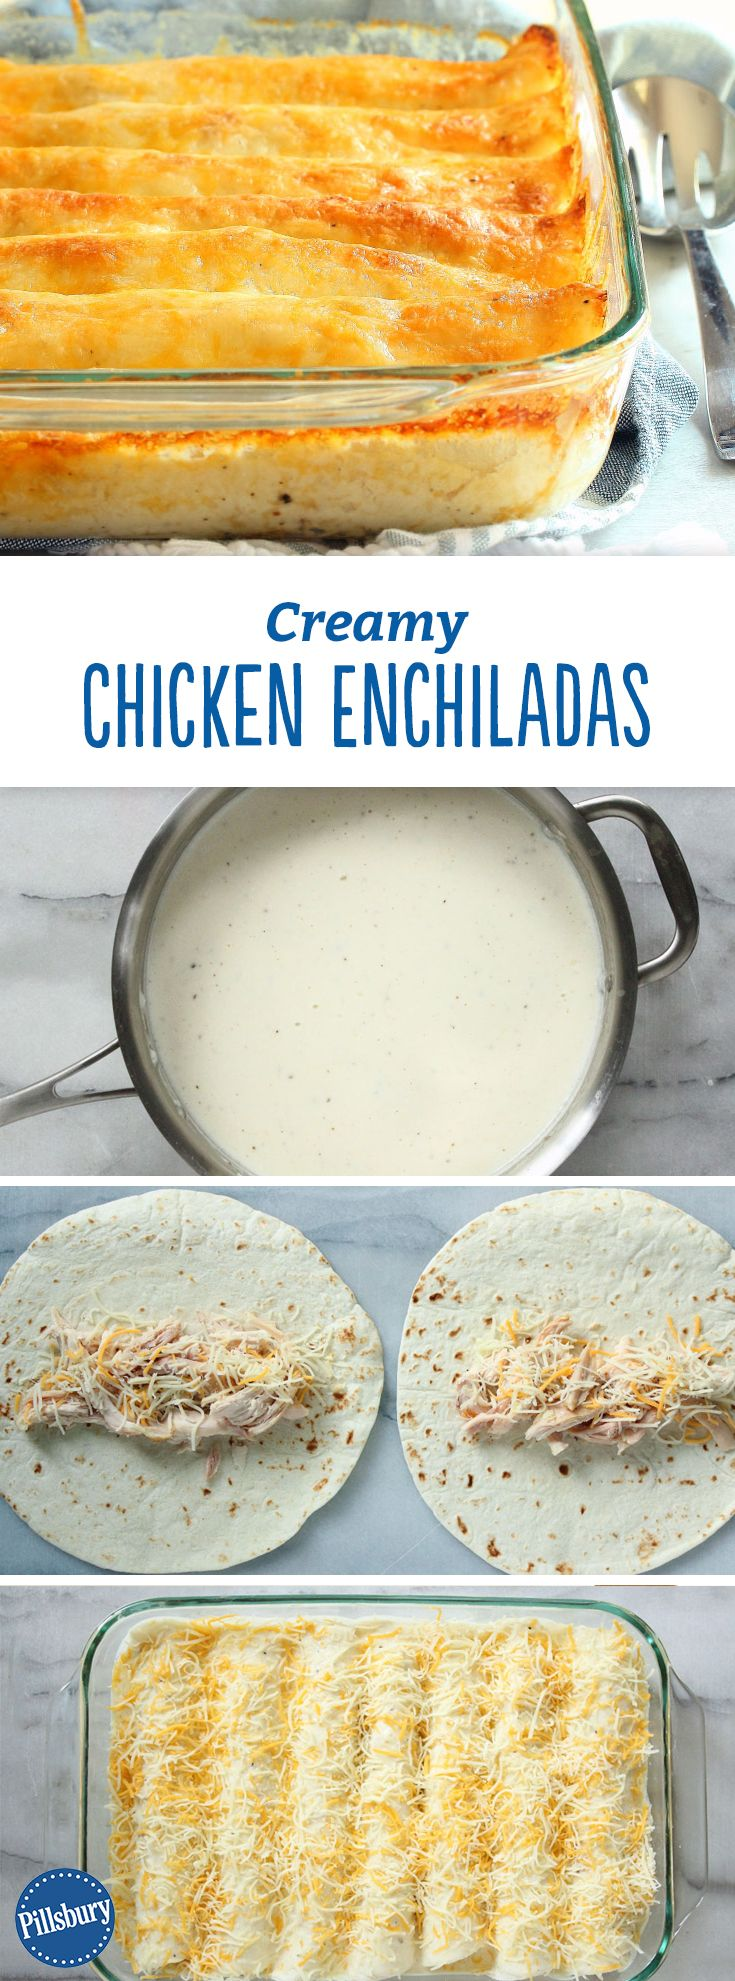 These quick-prep Creamy Chicken Enchiladas scream weeknight dinner. Save time and make these enchiladas ahead. Keep them in the fridge until you need to bake them!